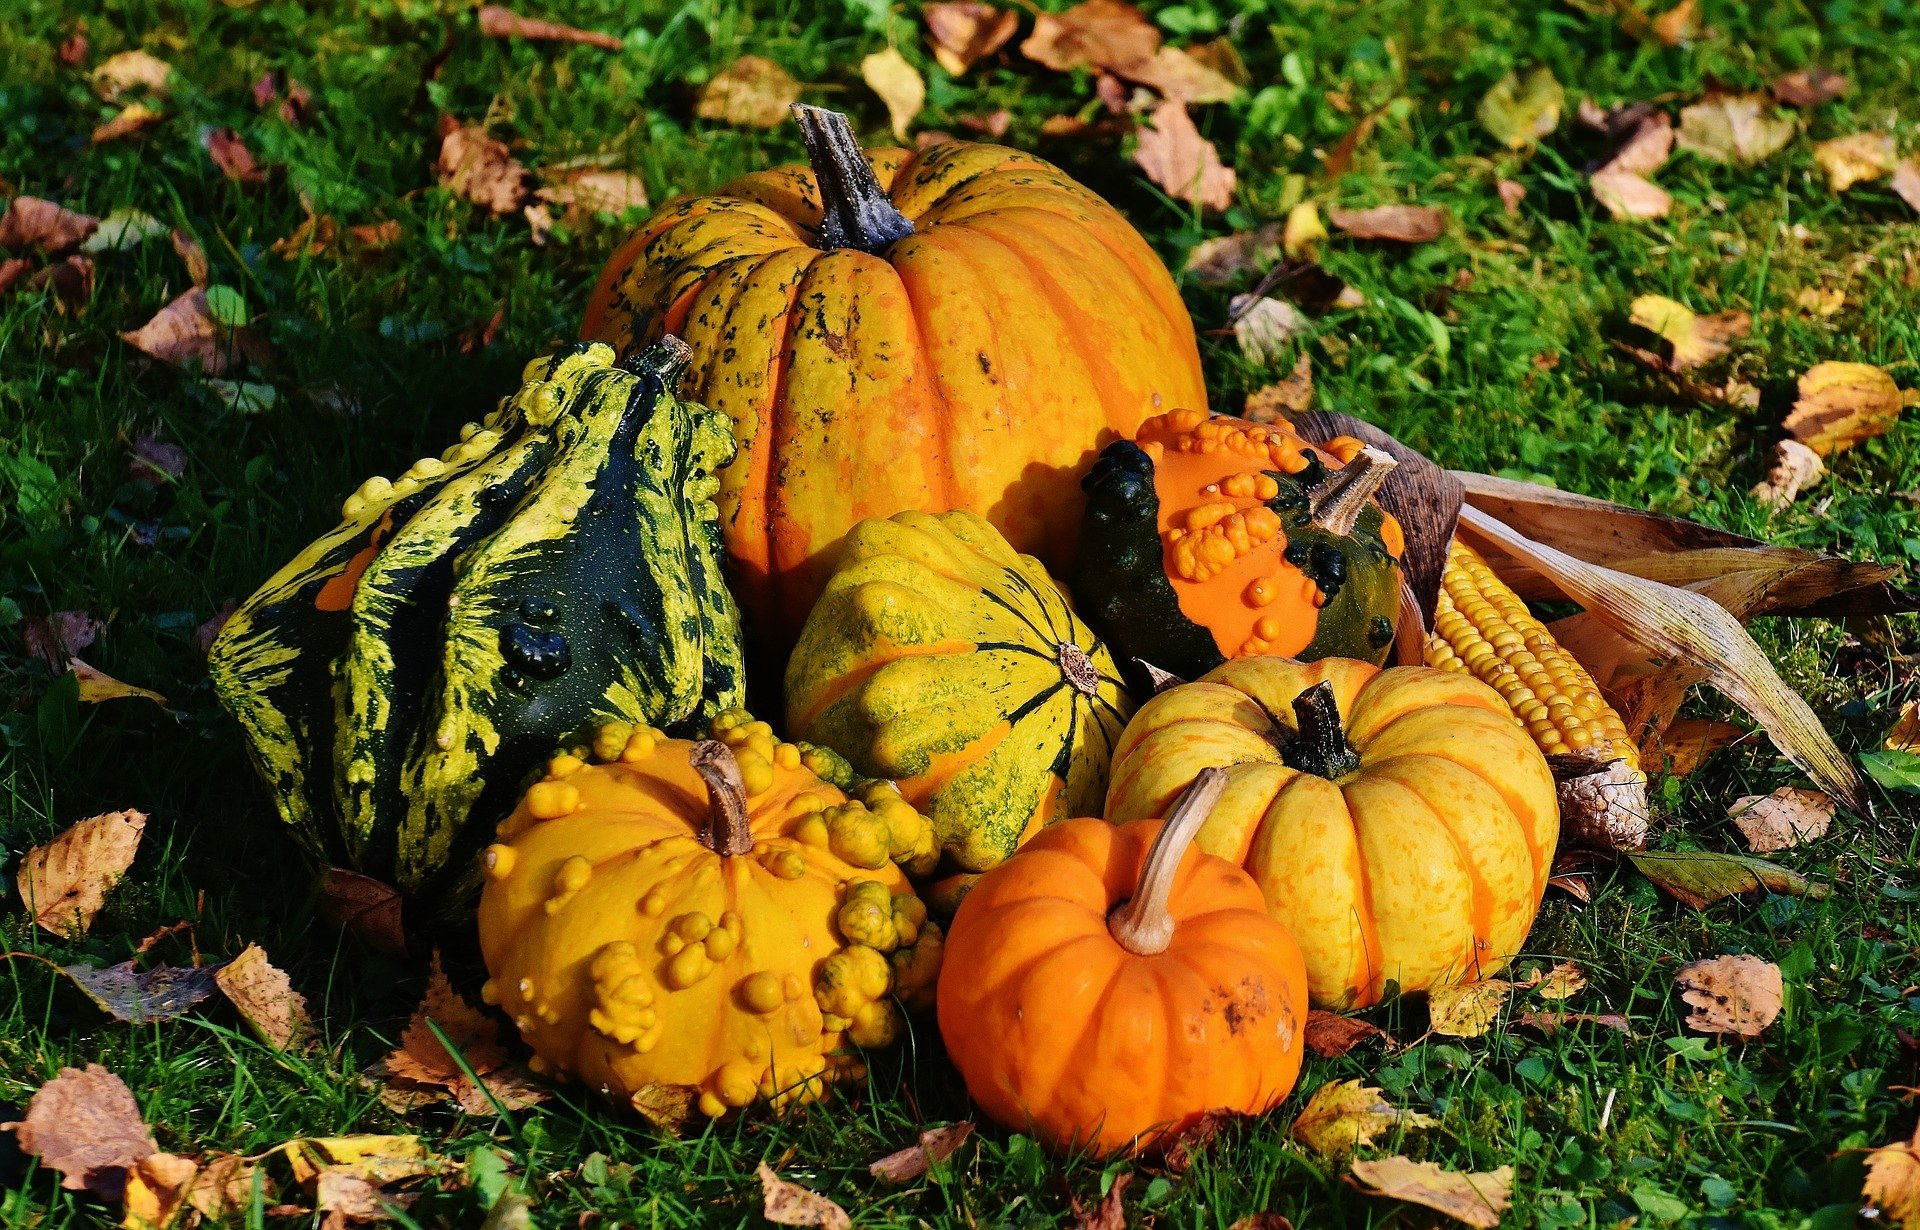 Pumpkins -- a Thanksgiving symbol.